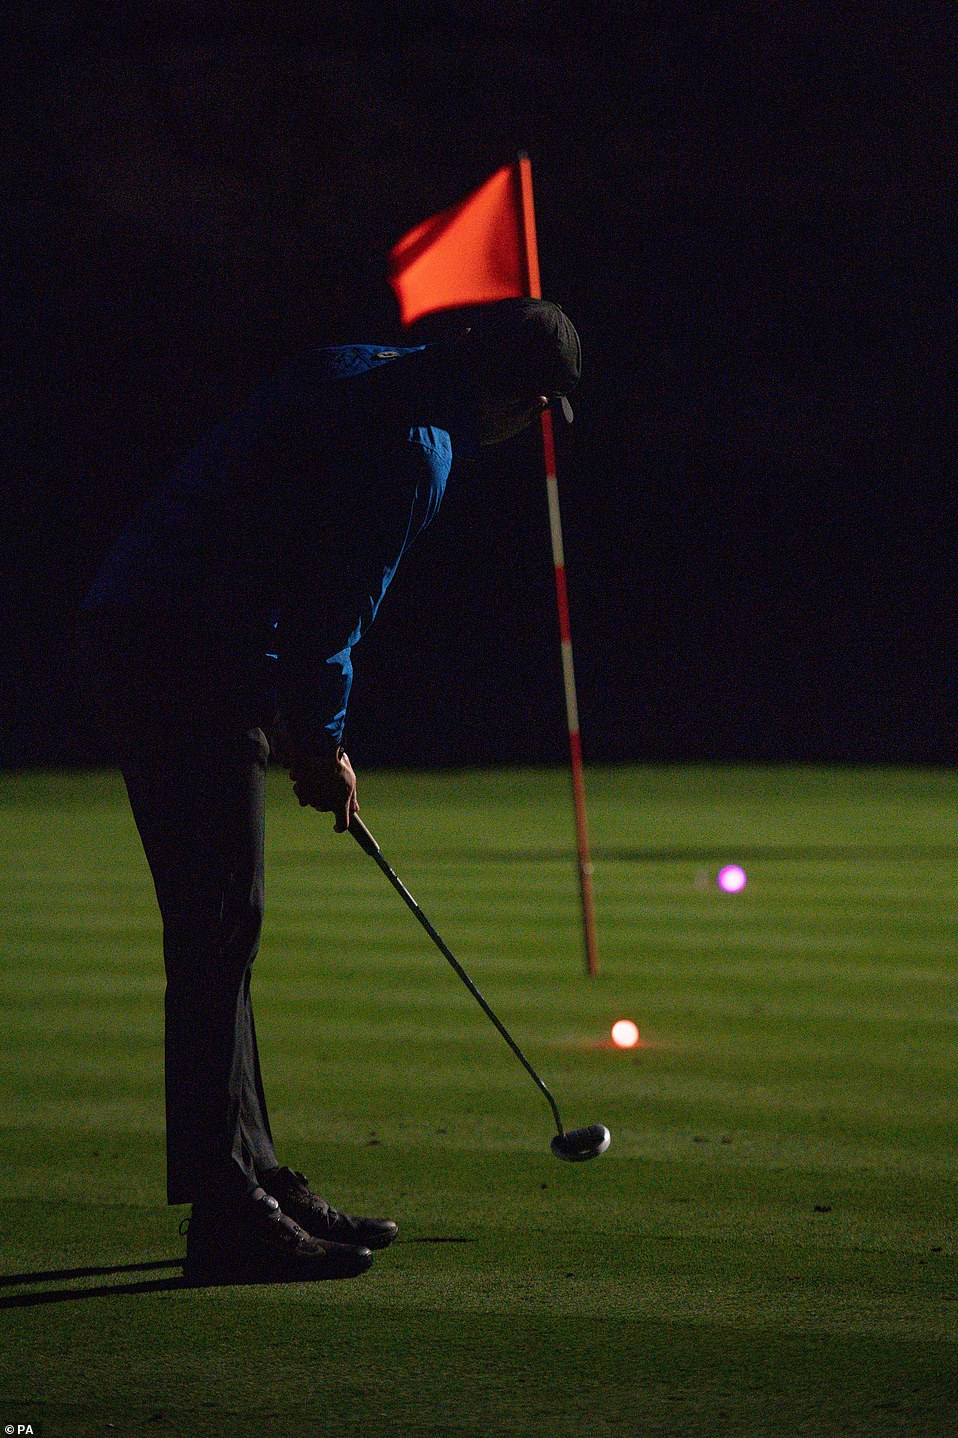 A golfer uses a neon coloured ball whilst under floodlights at Morley Hayes Golf centre in Ilkeston, Derbyshire at just after midnight